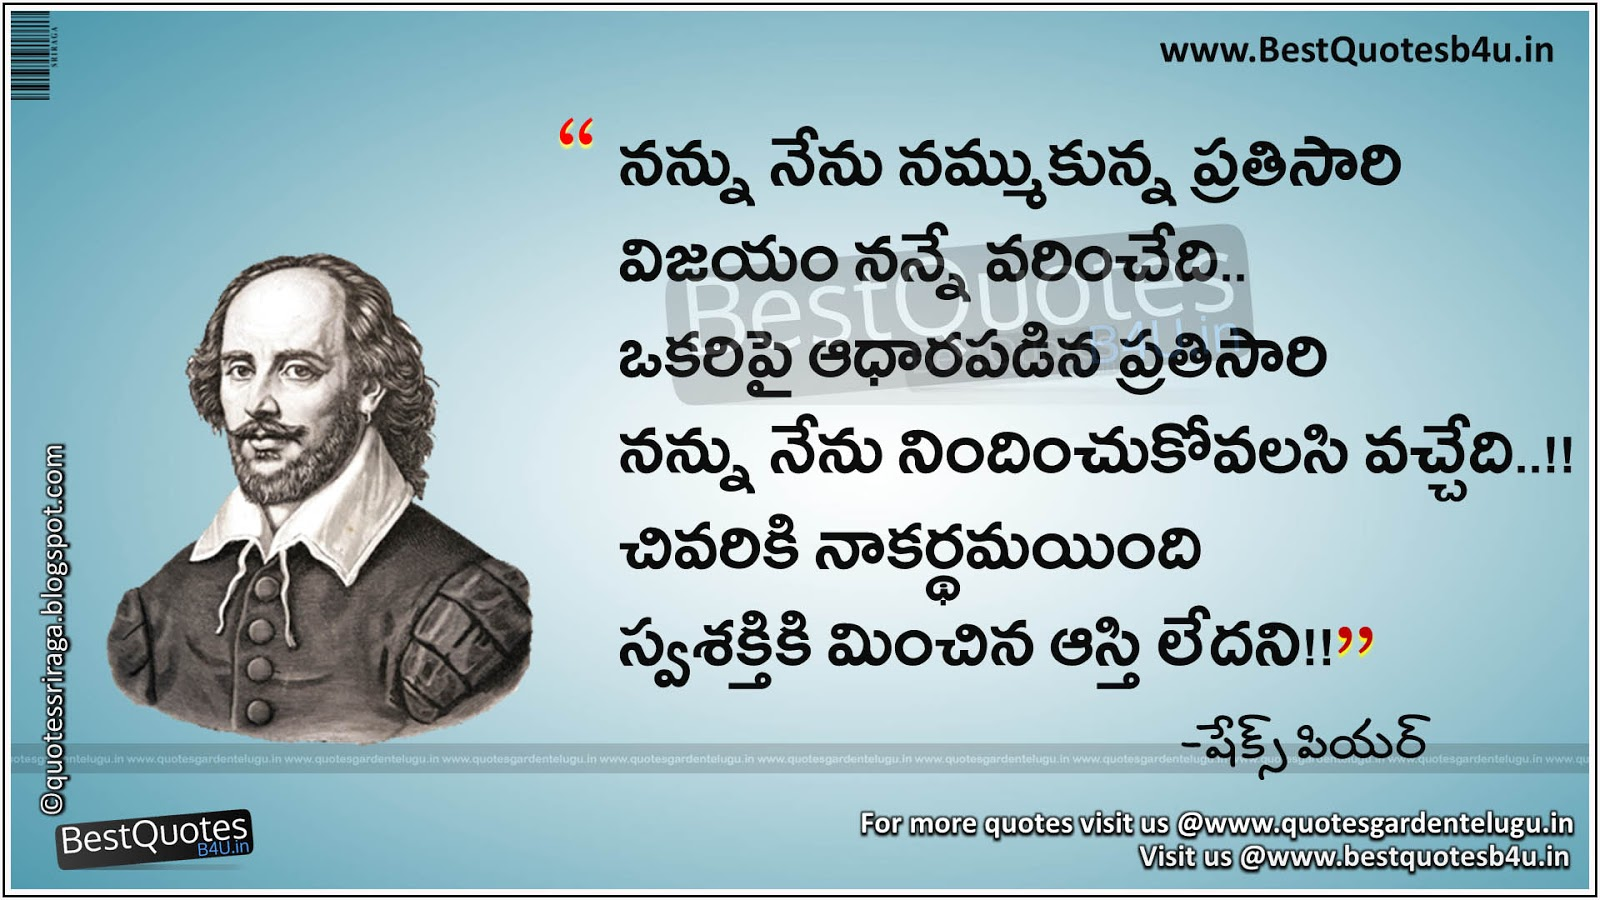 shakespear telugu nice thoughts inspirational quotes